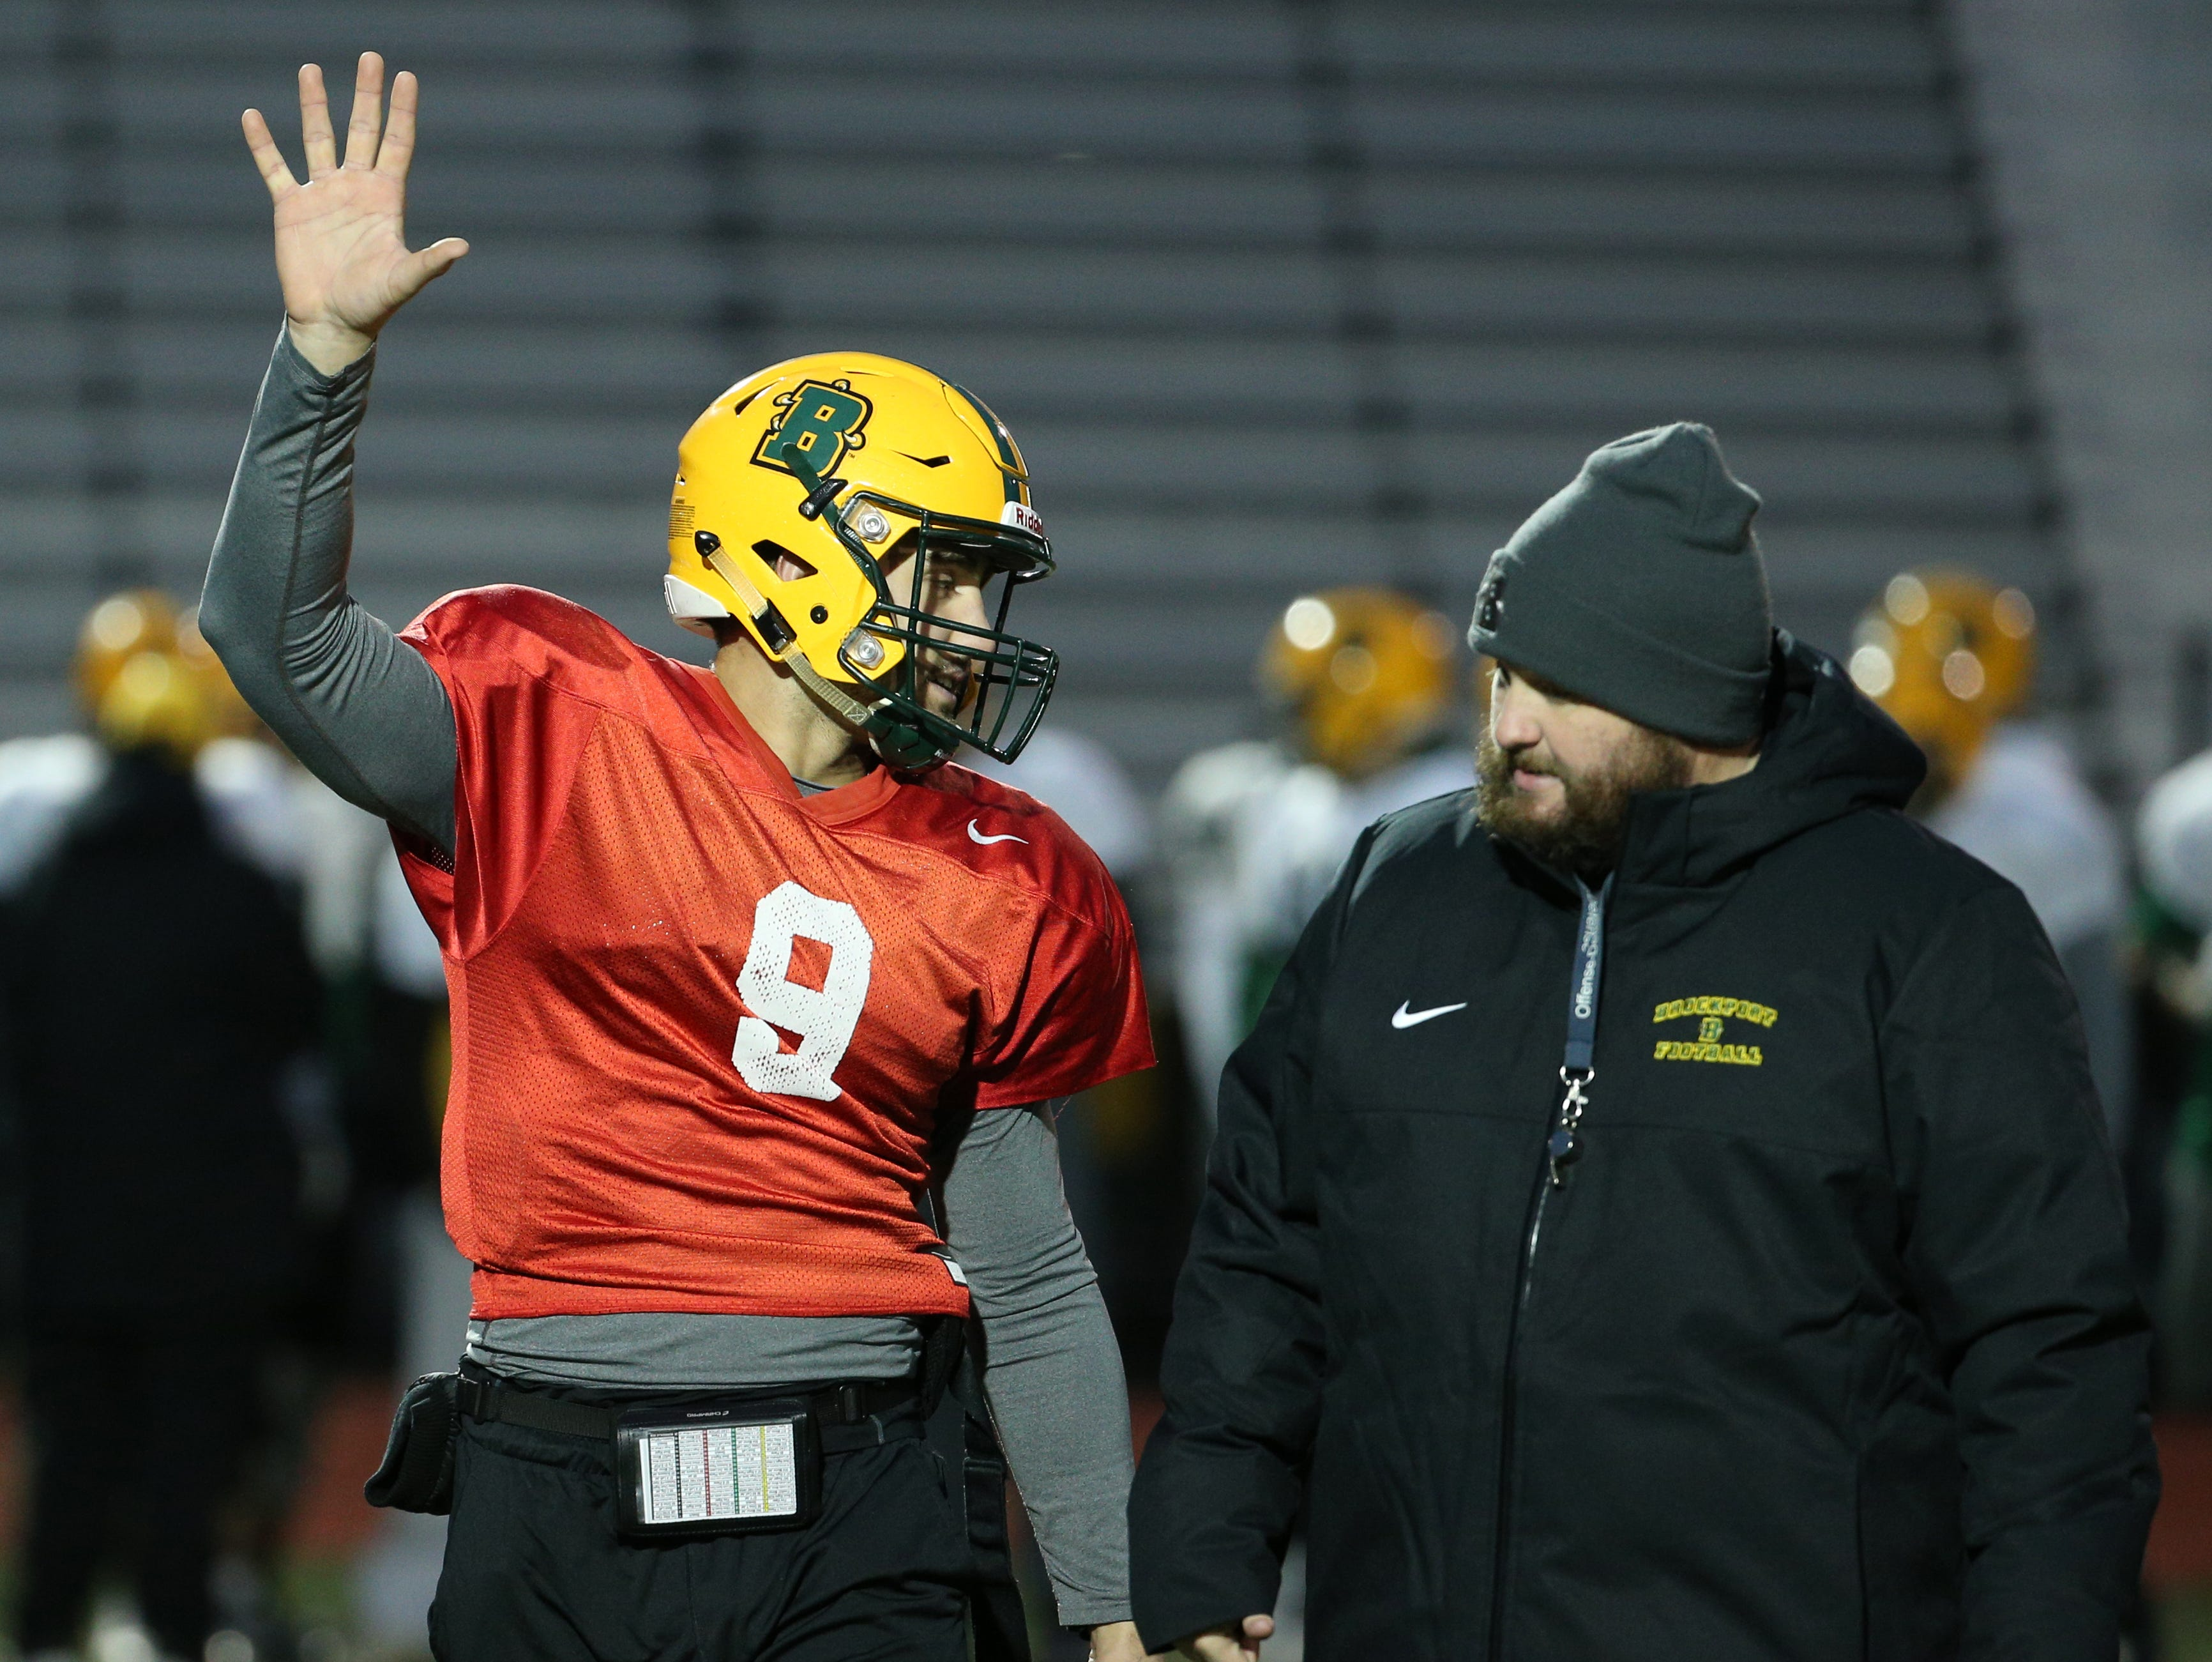 Joe Germinerio  (9) talks with assistant coach Justin Dueppengiesser at Brockport football practice.